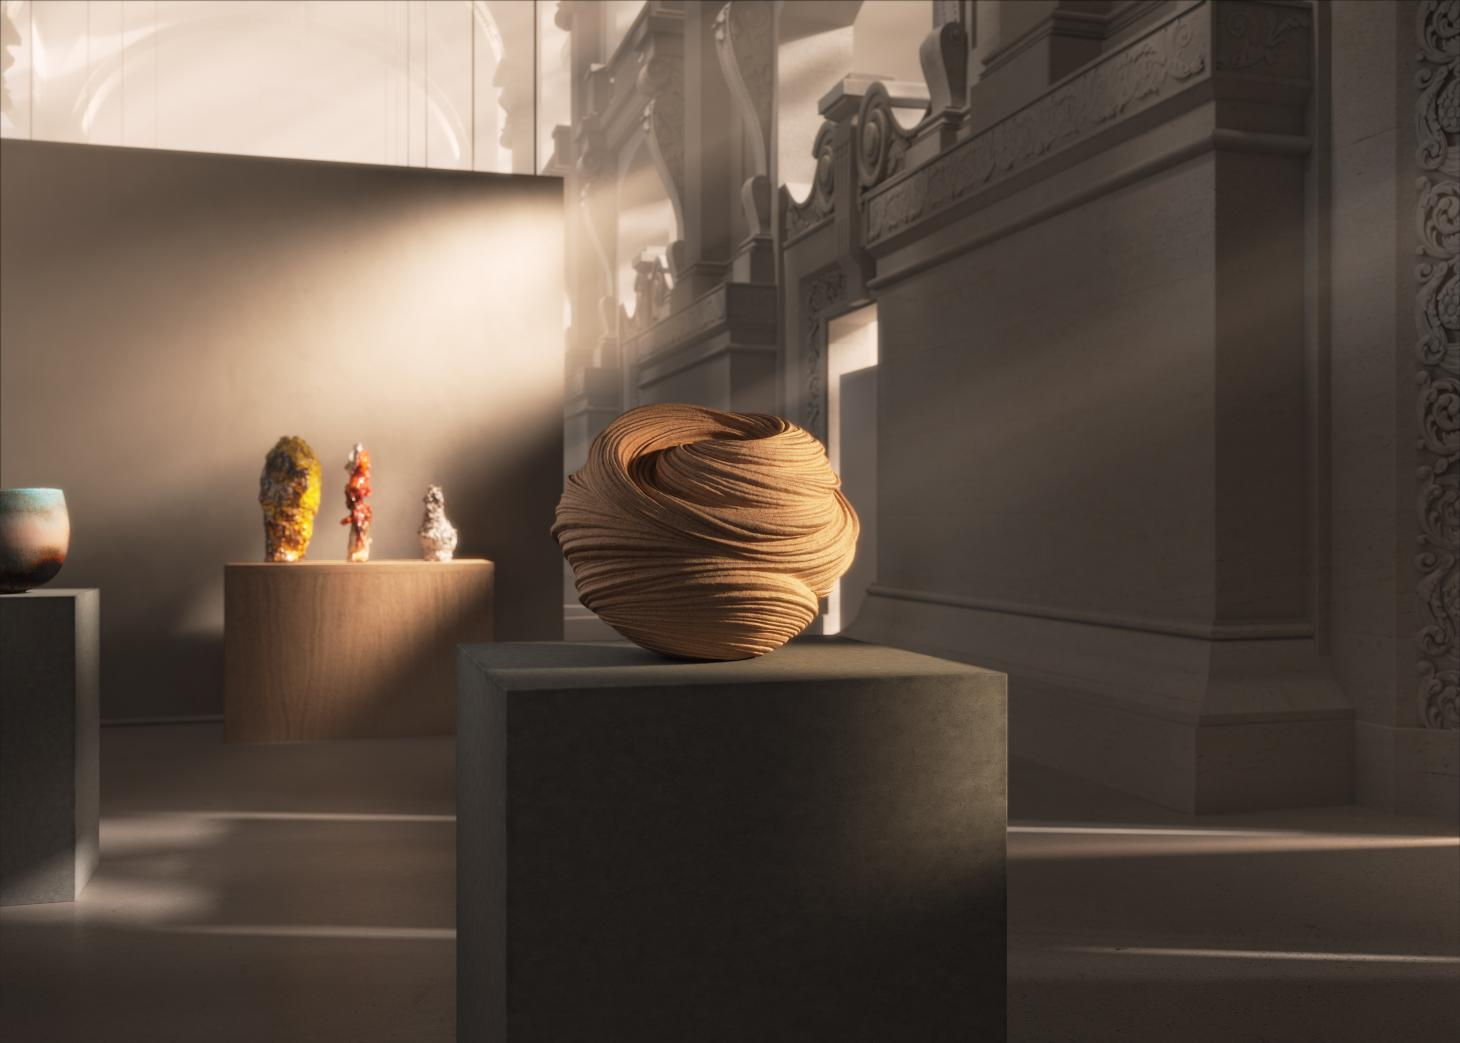 A render replicating the Great Hall of the Musée des Arts Décoratifs, Paris, with a virtual exhibition of the Loewe Foundation Craft Prize. The ceramic work of Takayuki Sakiyama, special mention from the jury, can be seen in the picture